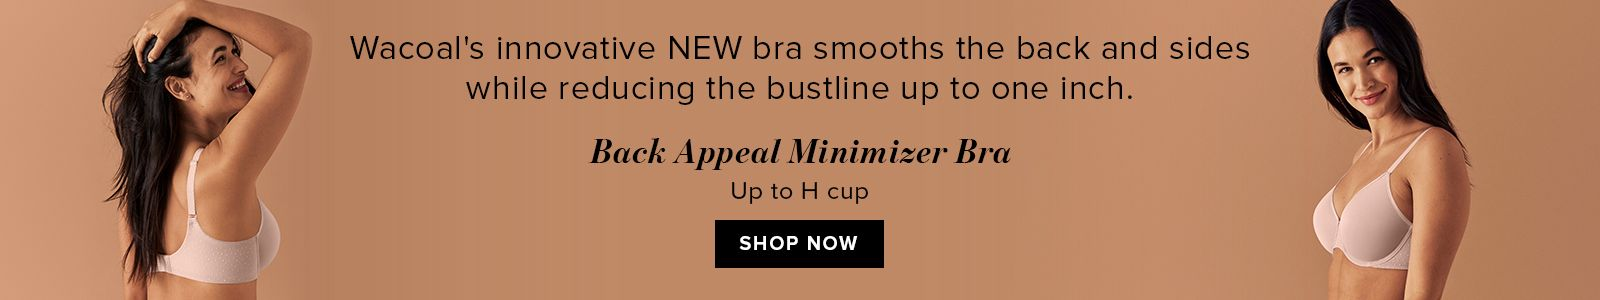 Back Appeal Minimizer Bra, up to H cup Shop Now